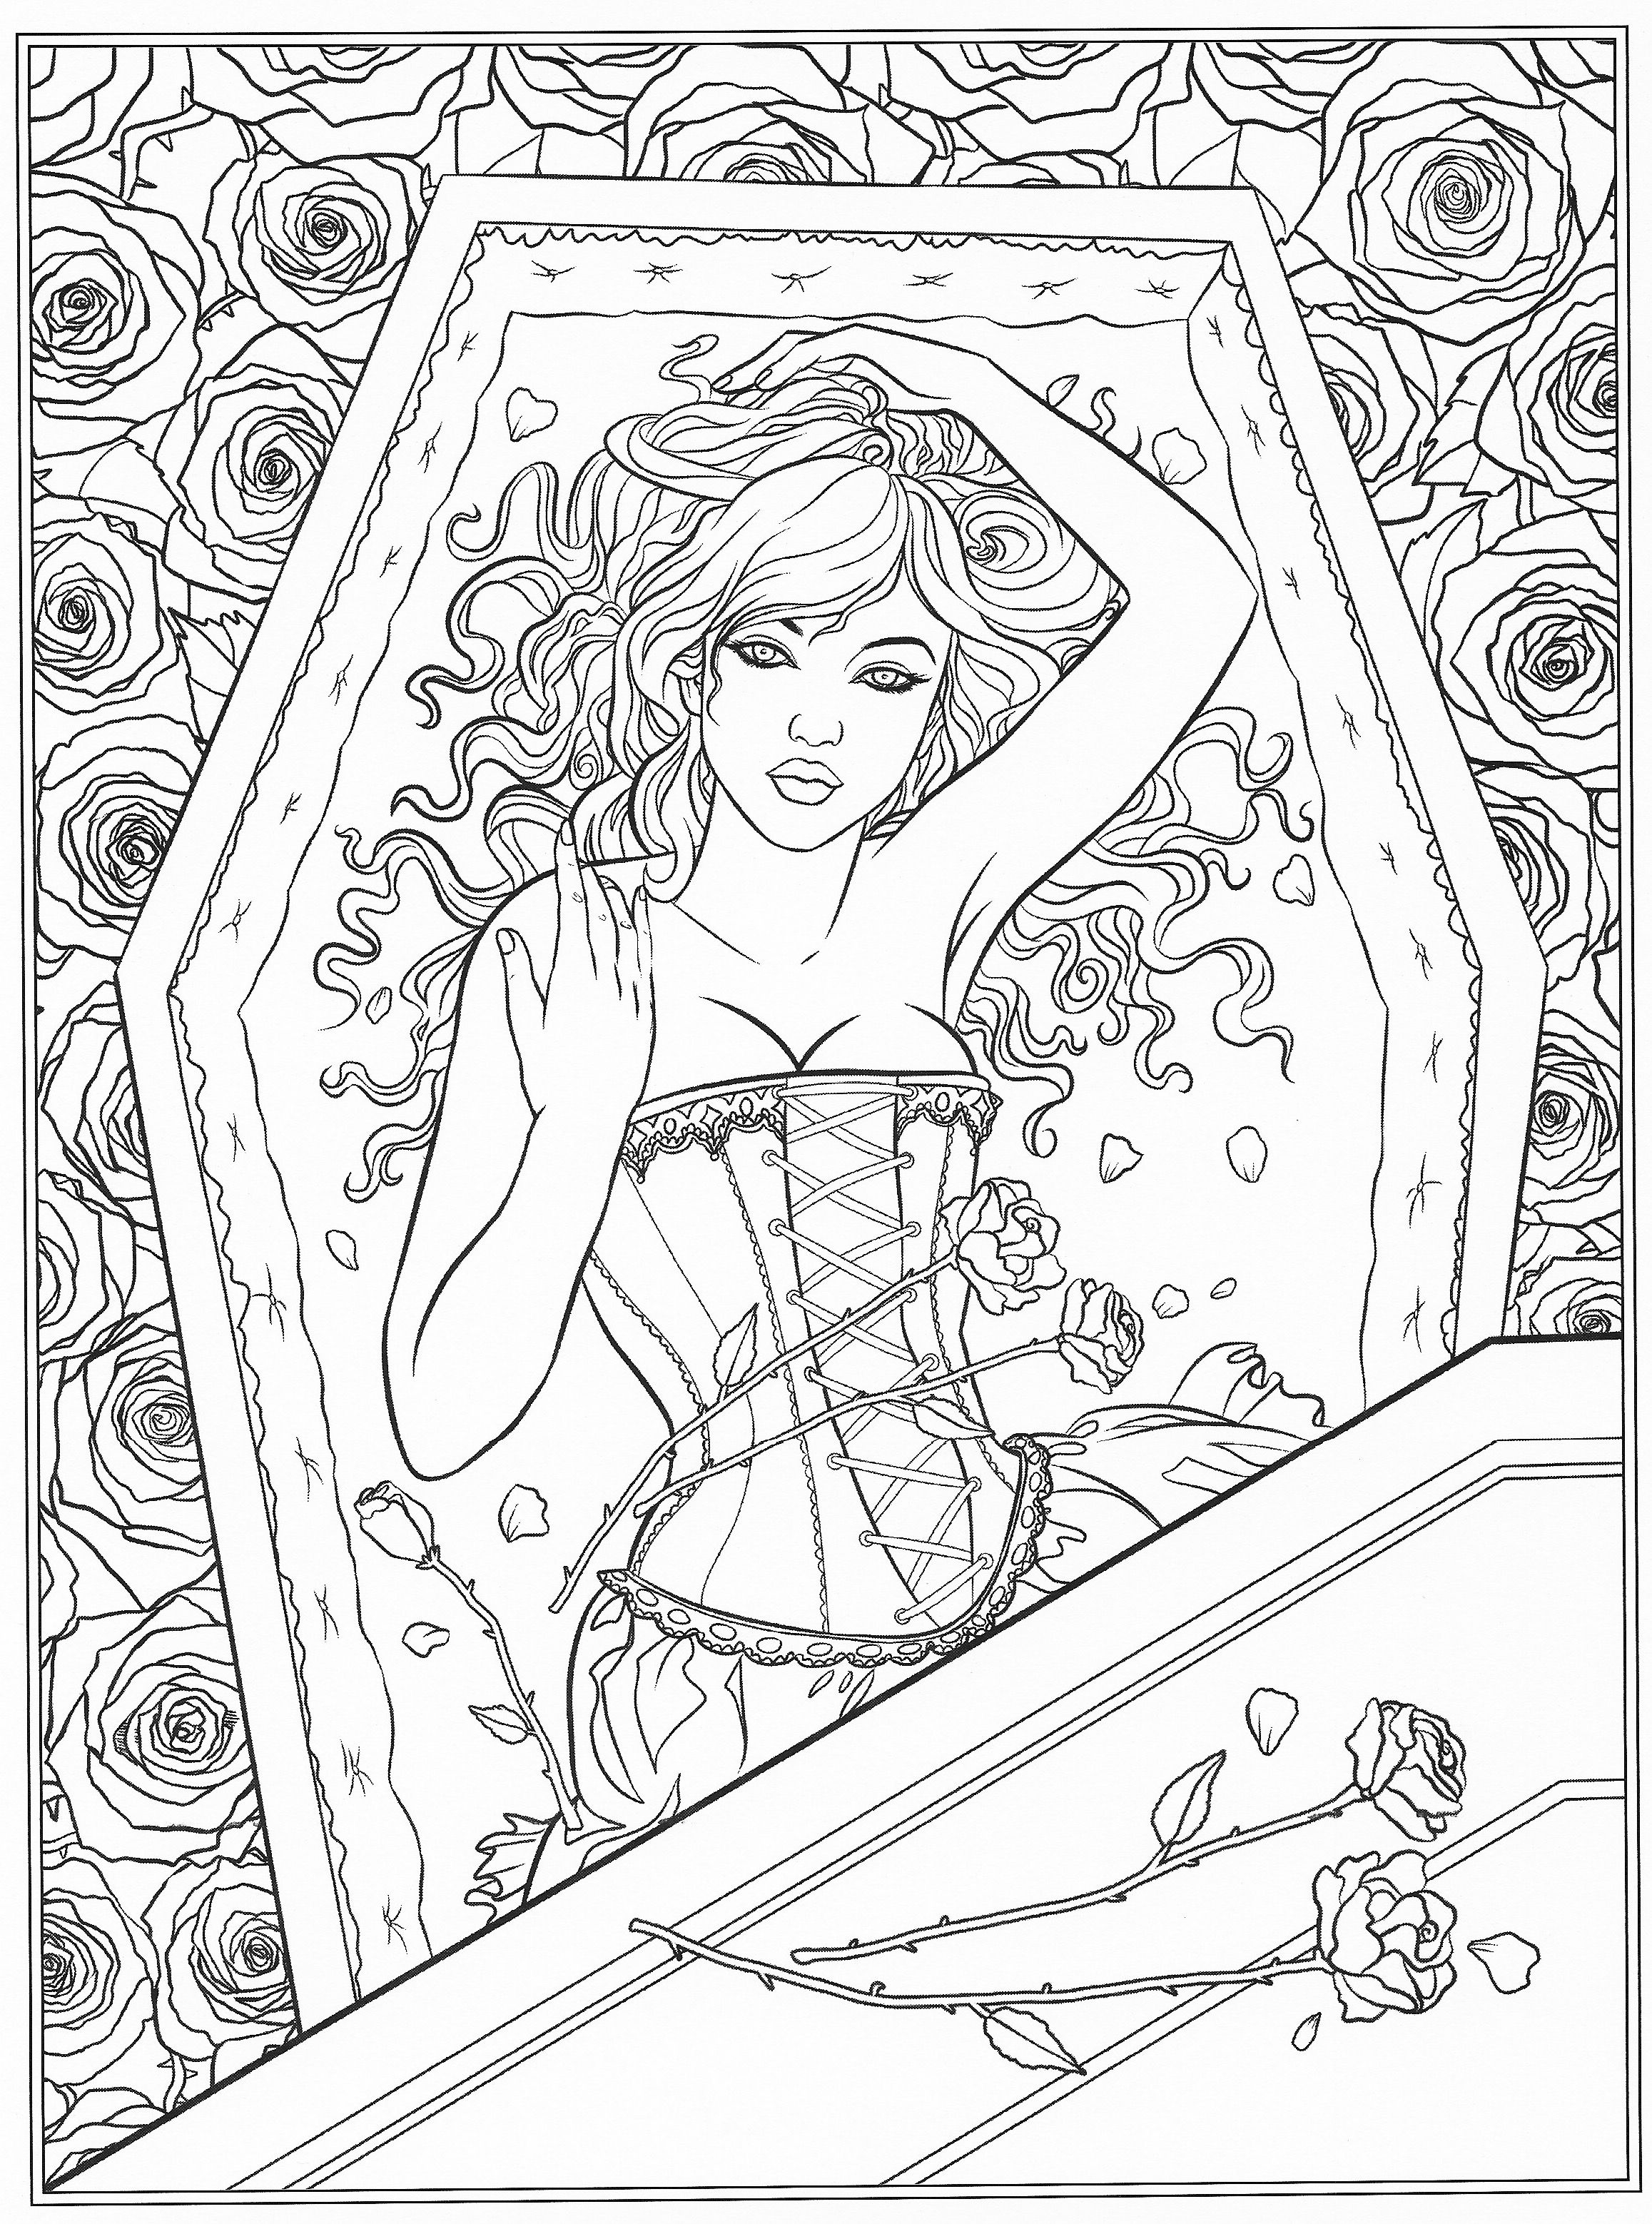 Gothic Coloring Pages Free Coloring Pages Download | Xsibe punk ...